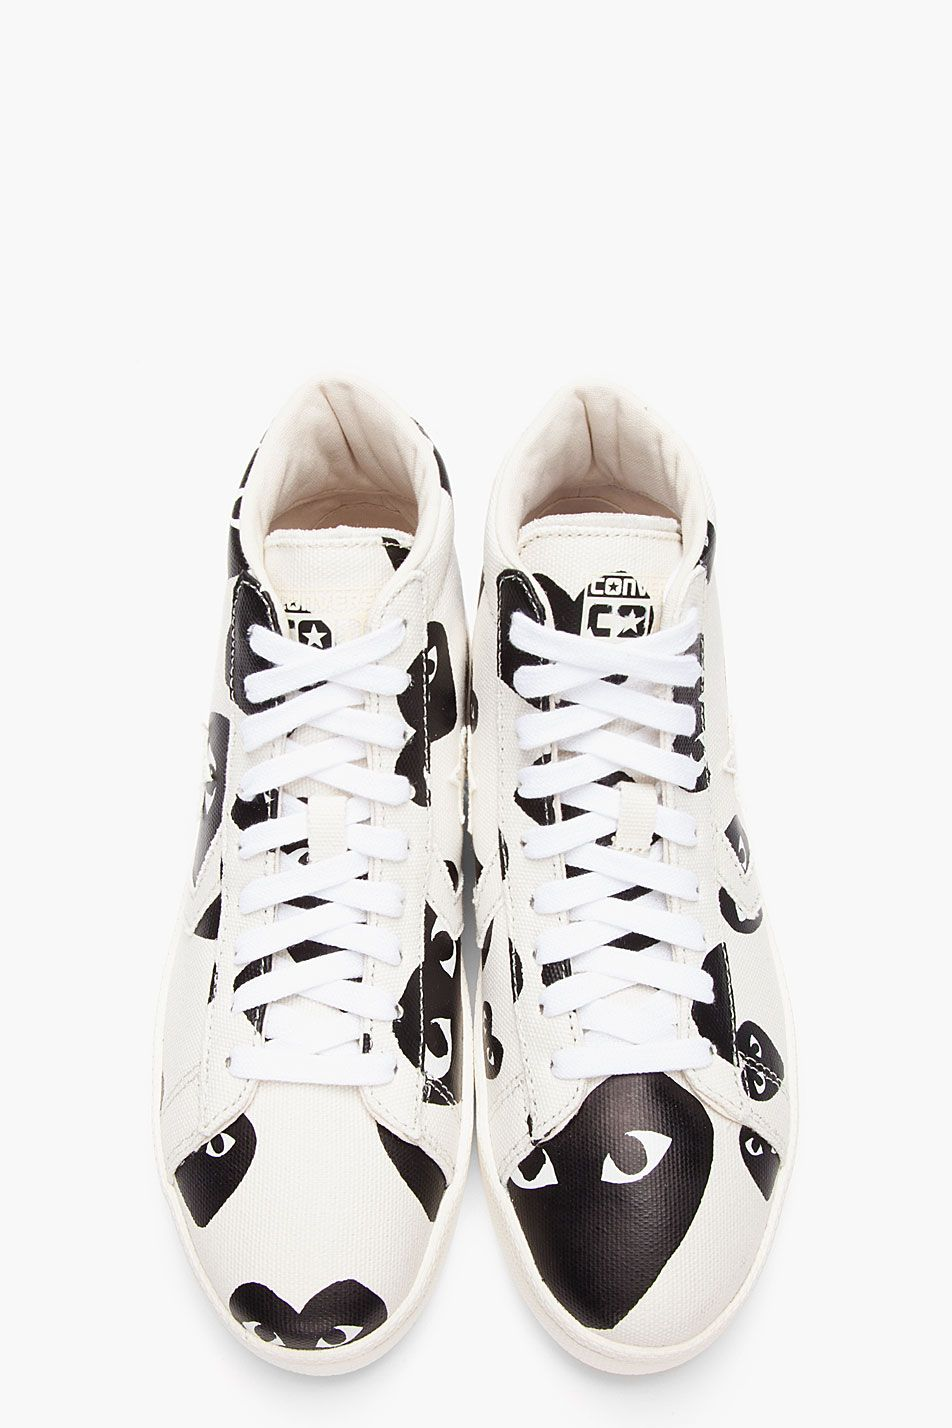 COMME DES GARÇONS PLAY - Ivory Canvas Heart Logo High-Top Converse Pro  Sneakers Low